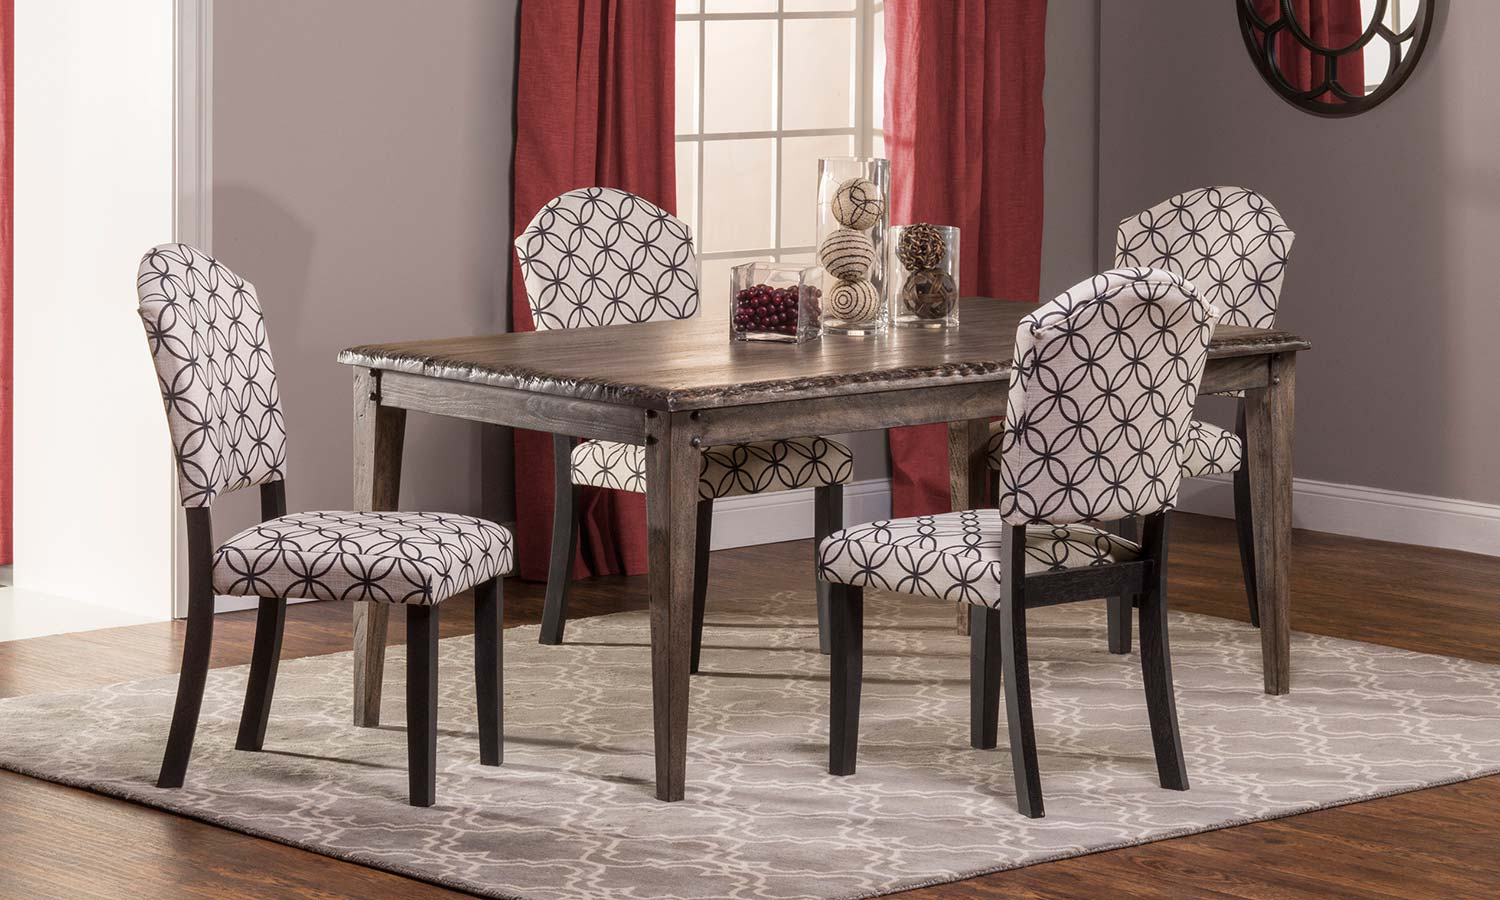 Wonderful Hillsdale Lorient 5 PC Rectangle Dining Set With Parsons Chair   Washed  Charcoal Gray/Black